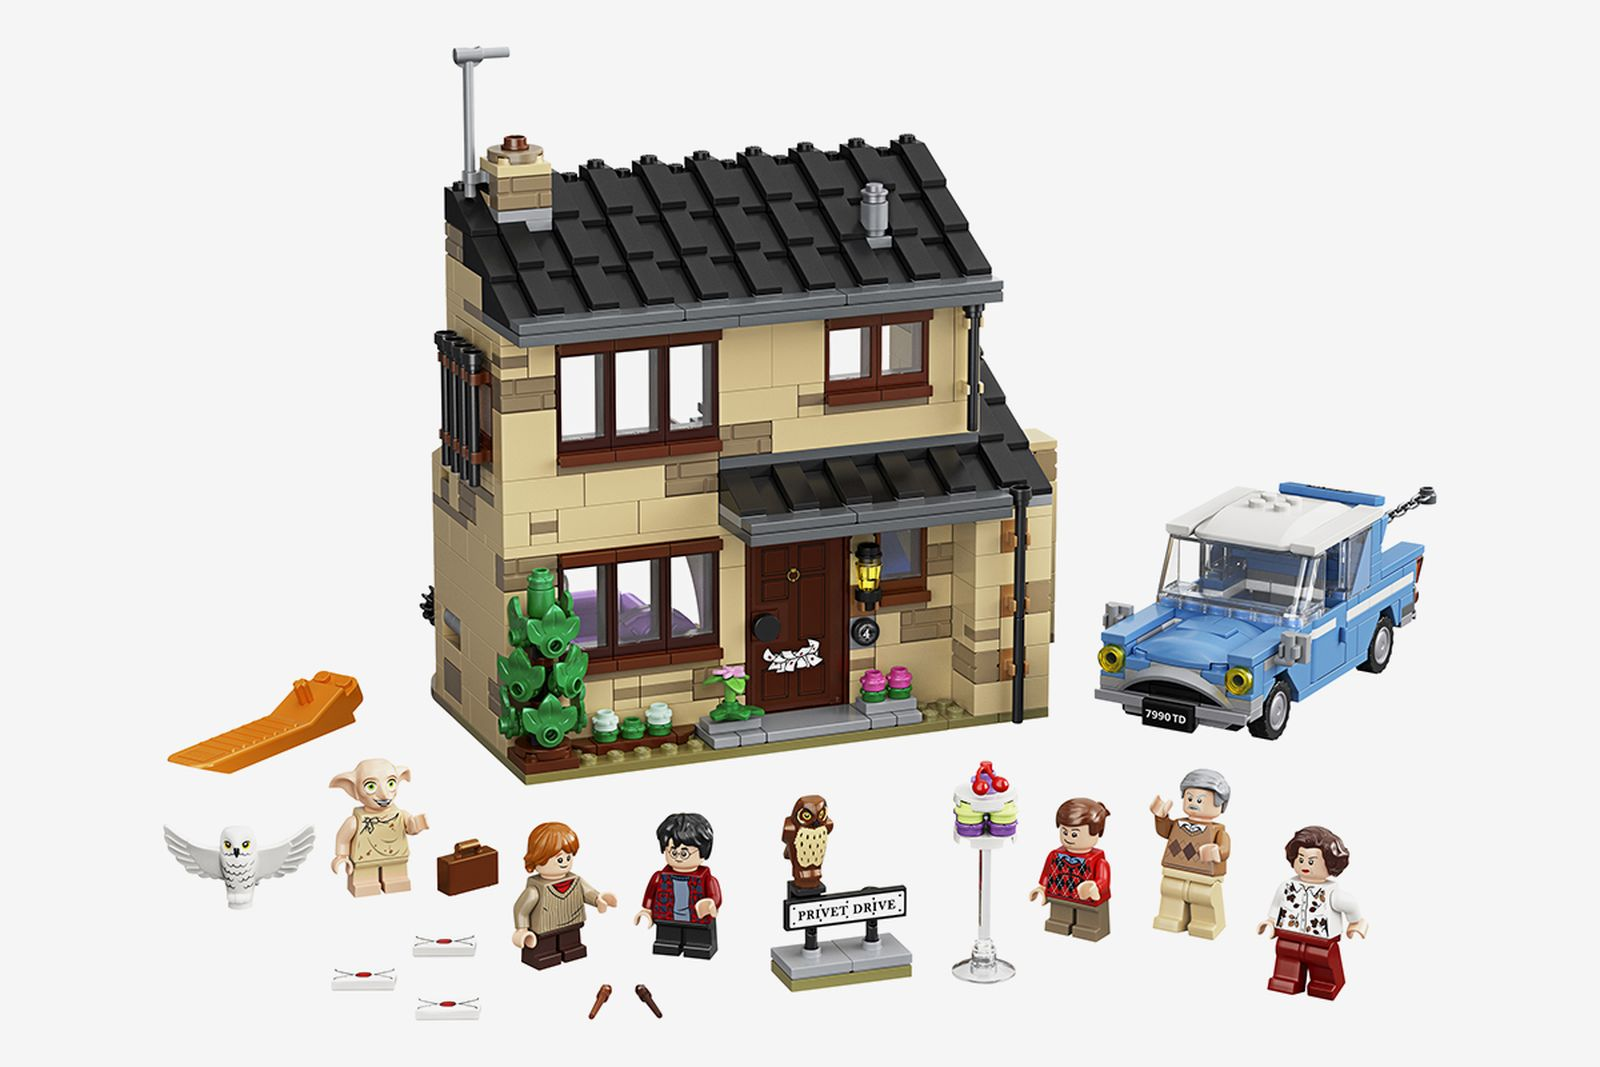 LEGO Harry Potter set